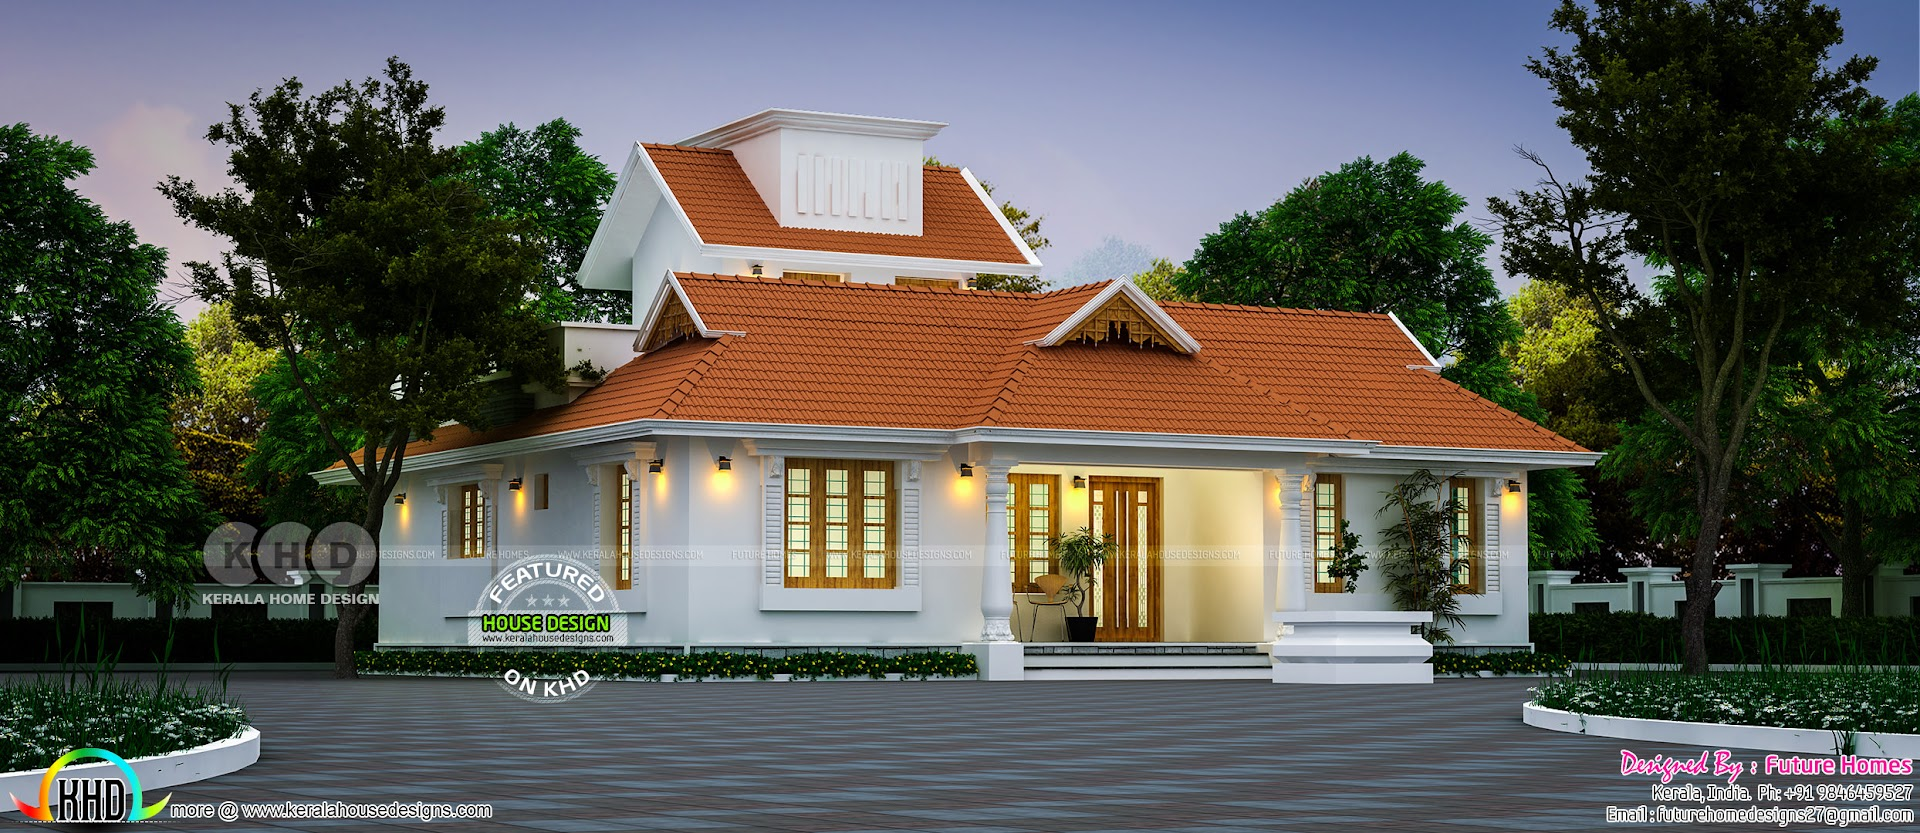 Beautiful 3 Bhk Traditional Kerala Home Design Kerala Home